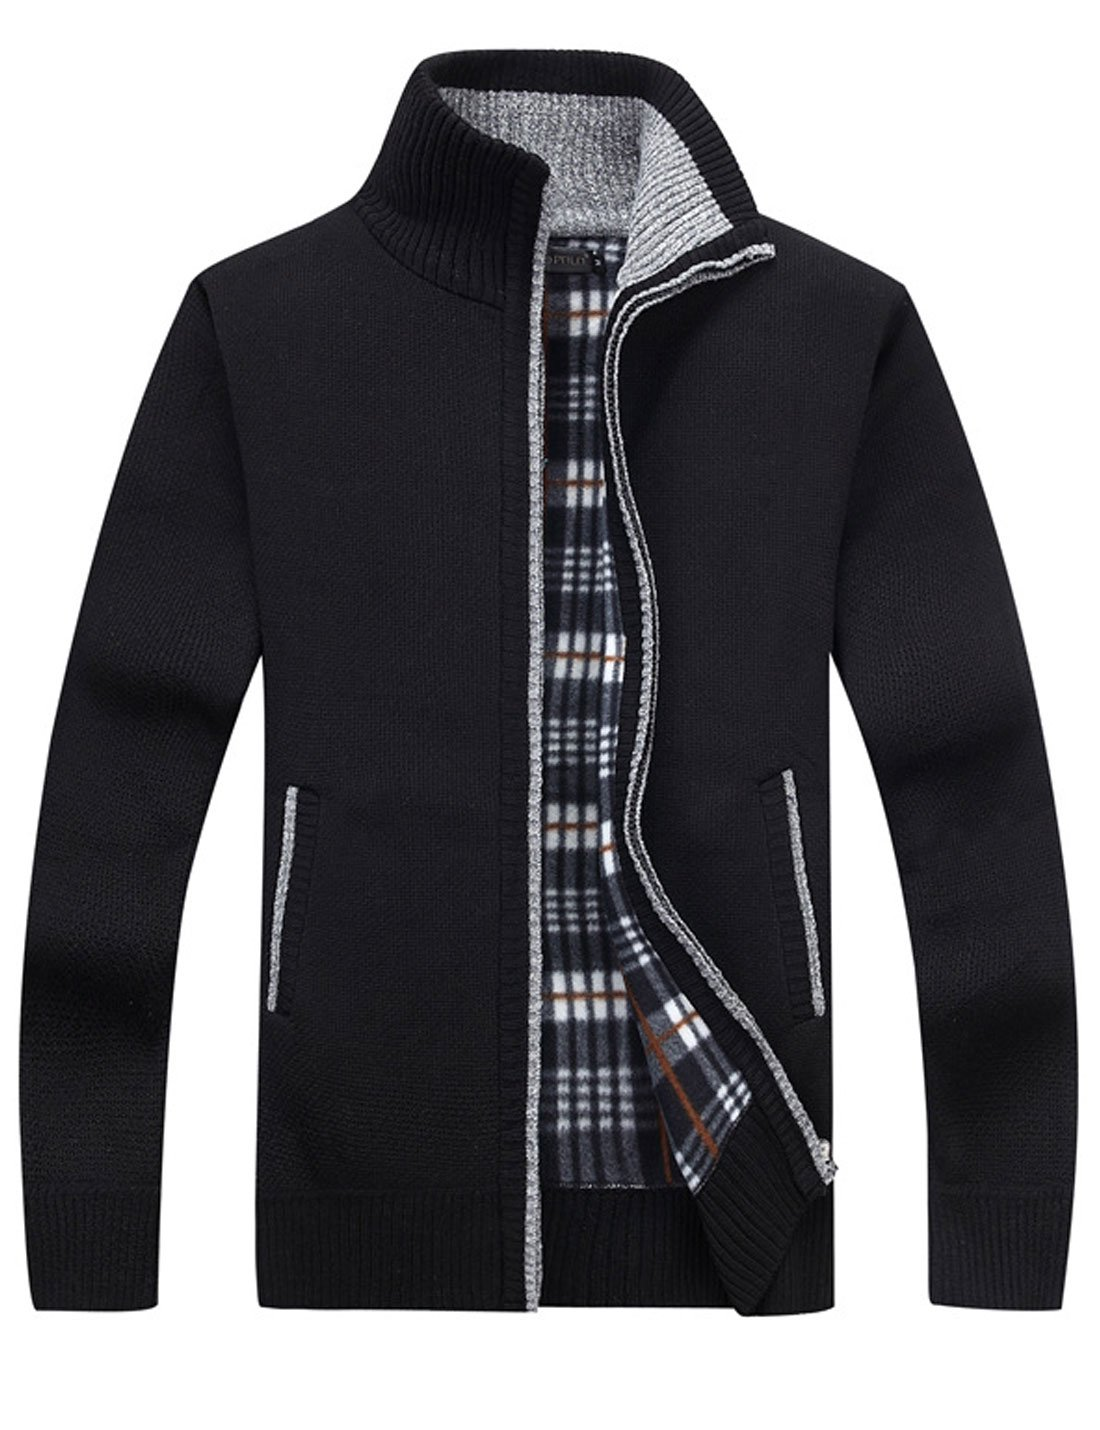 Yeokou Men's Casual Slim Full Zip Thick Knitted Cardigan Sweaters with Pockets (Medium, Black)